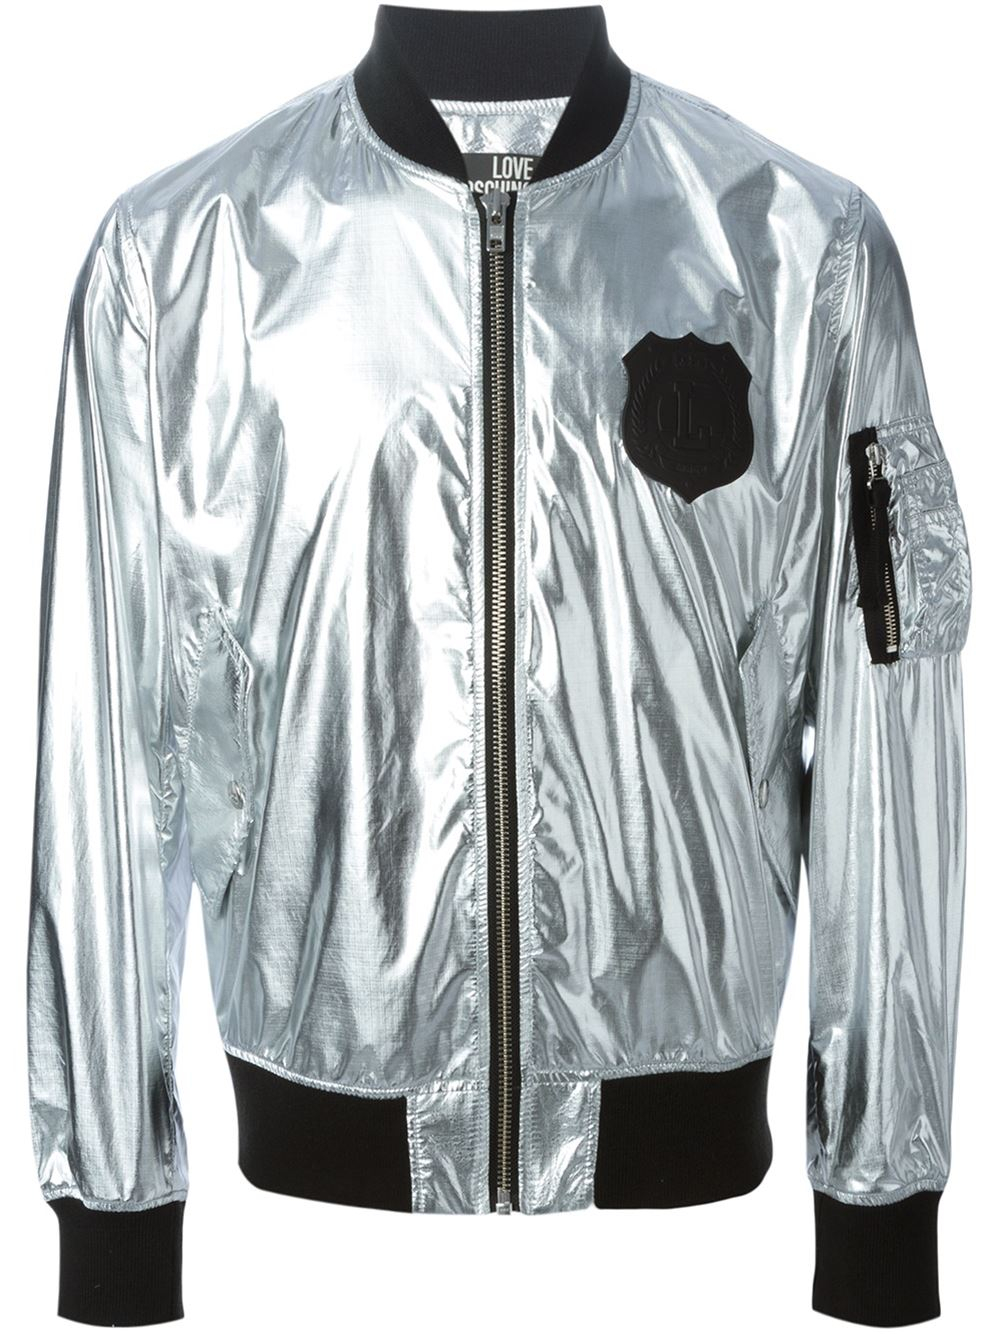 fcf42b769a8a6 Love Moschino Metallic Bomber Jacket in Metallic for Men - Lyst